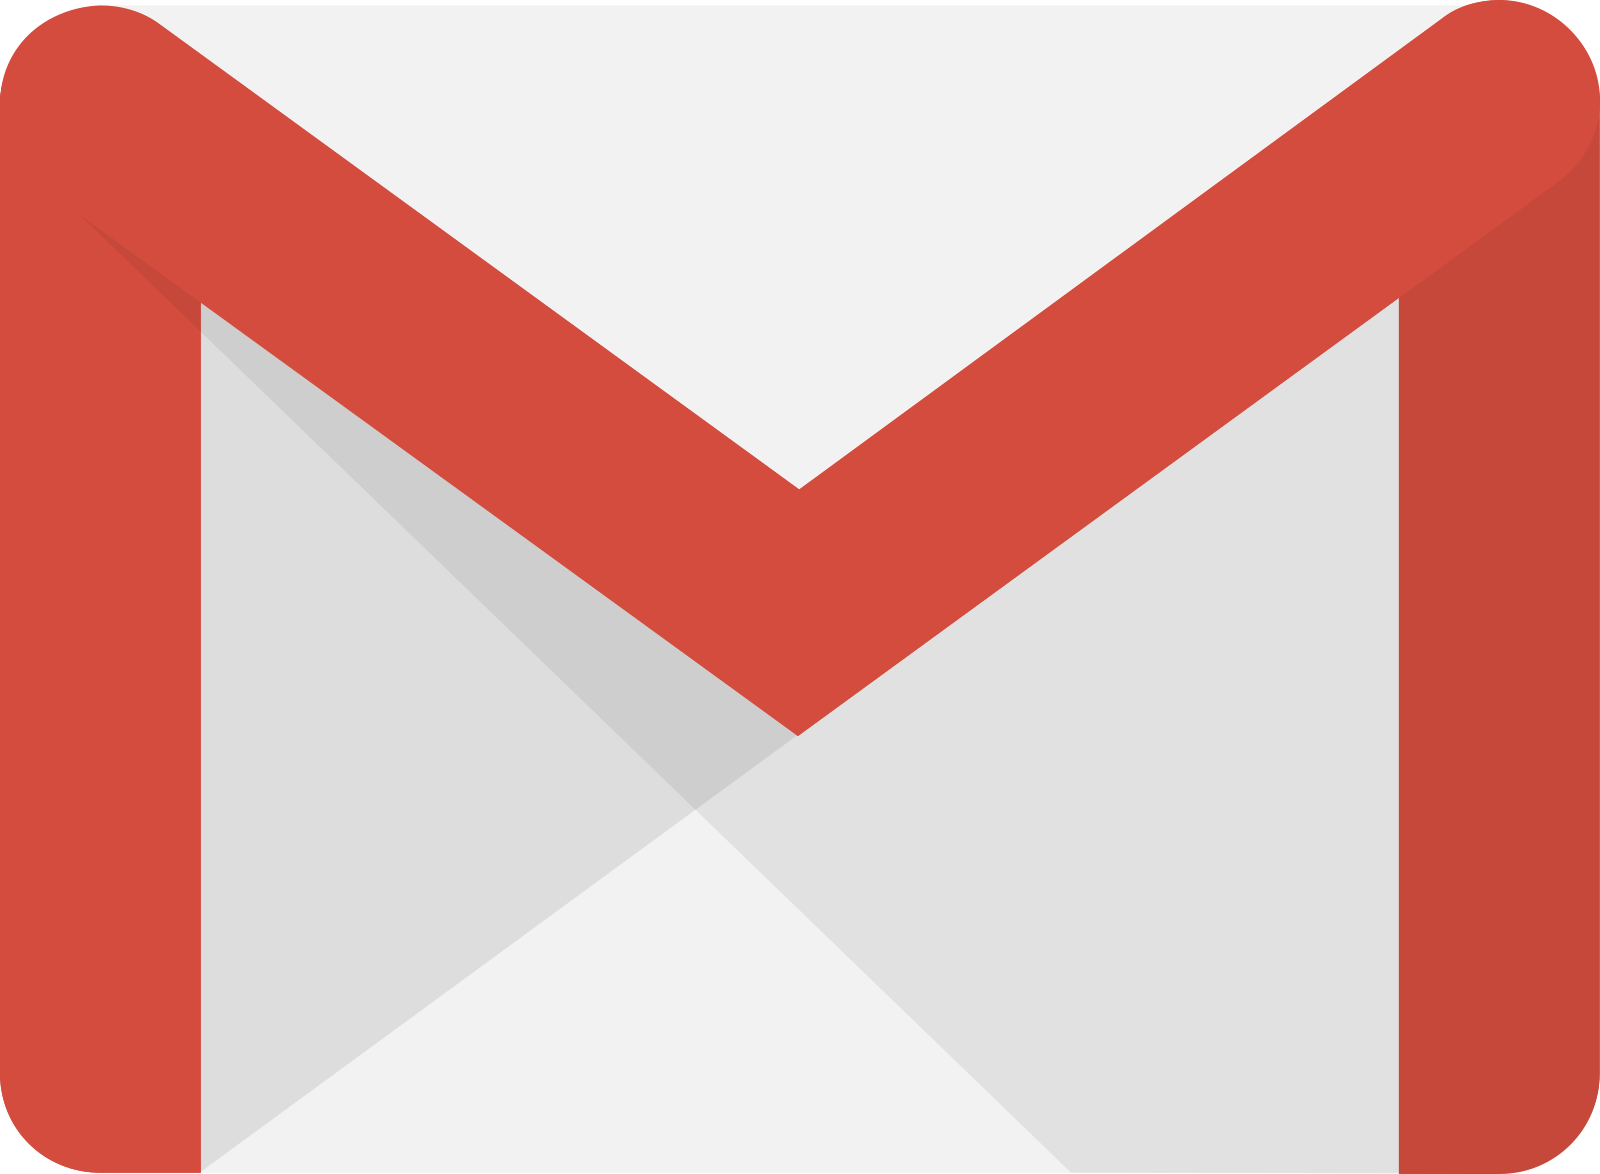 gmail-cone-icon-2